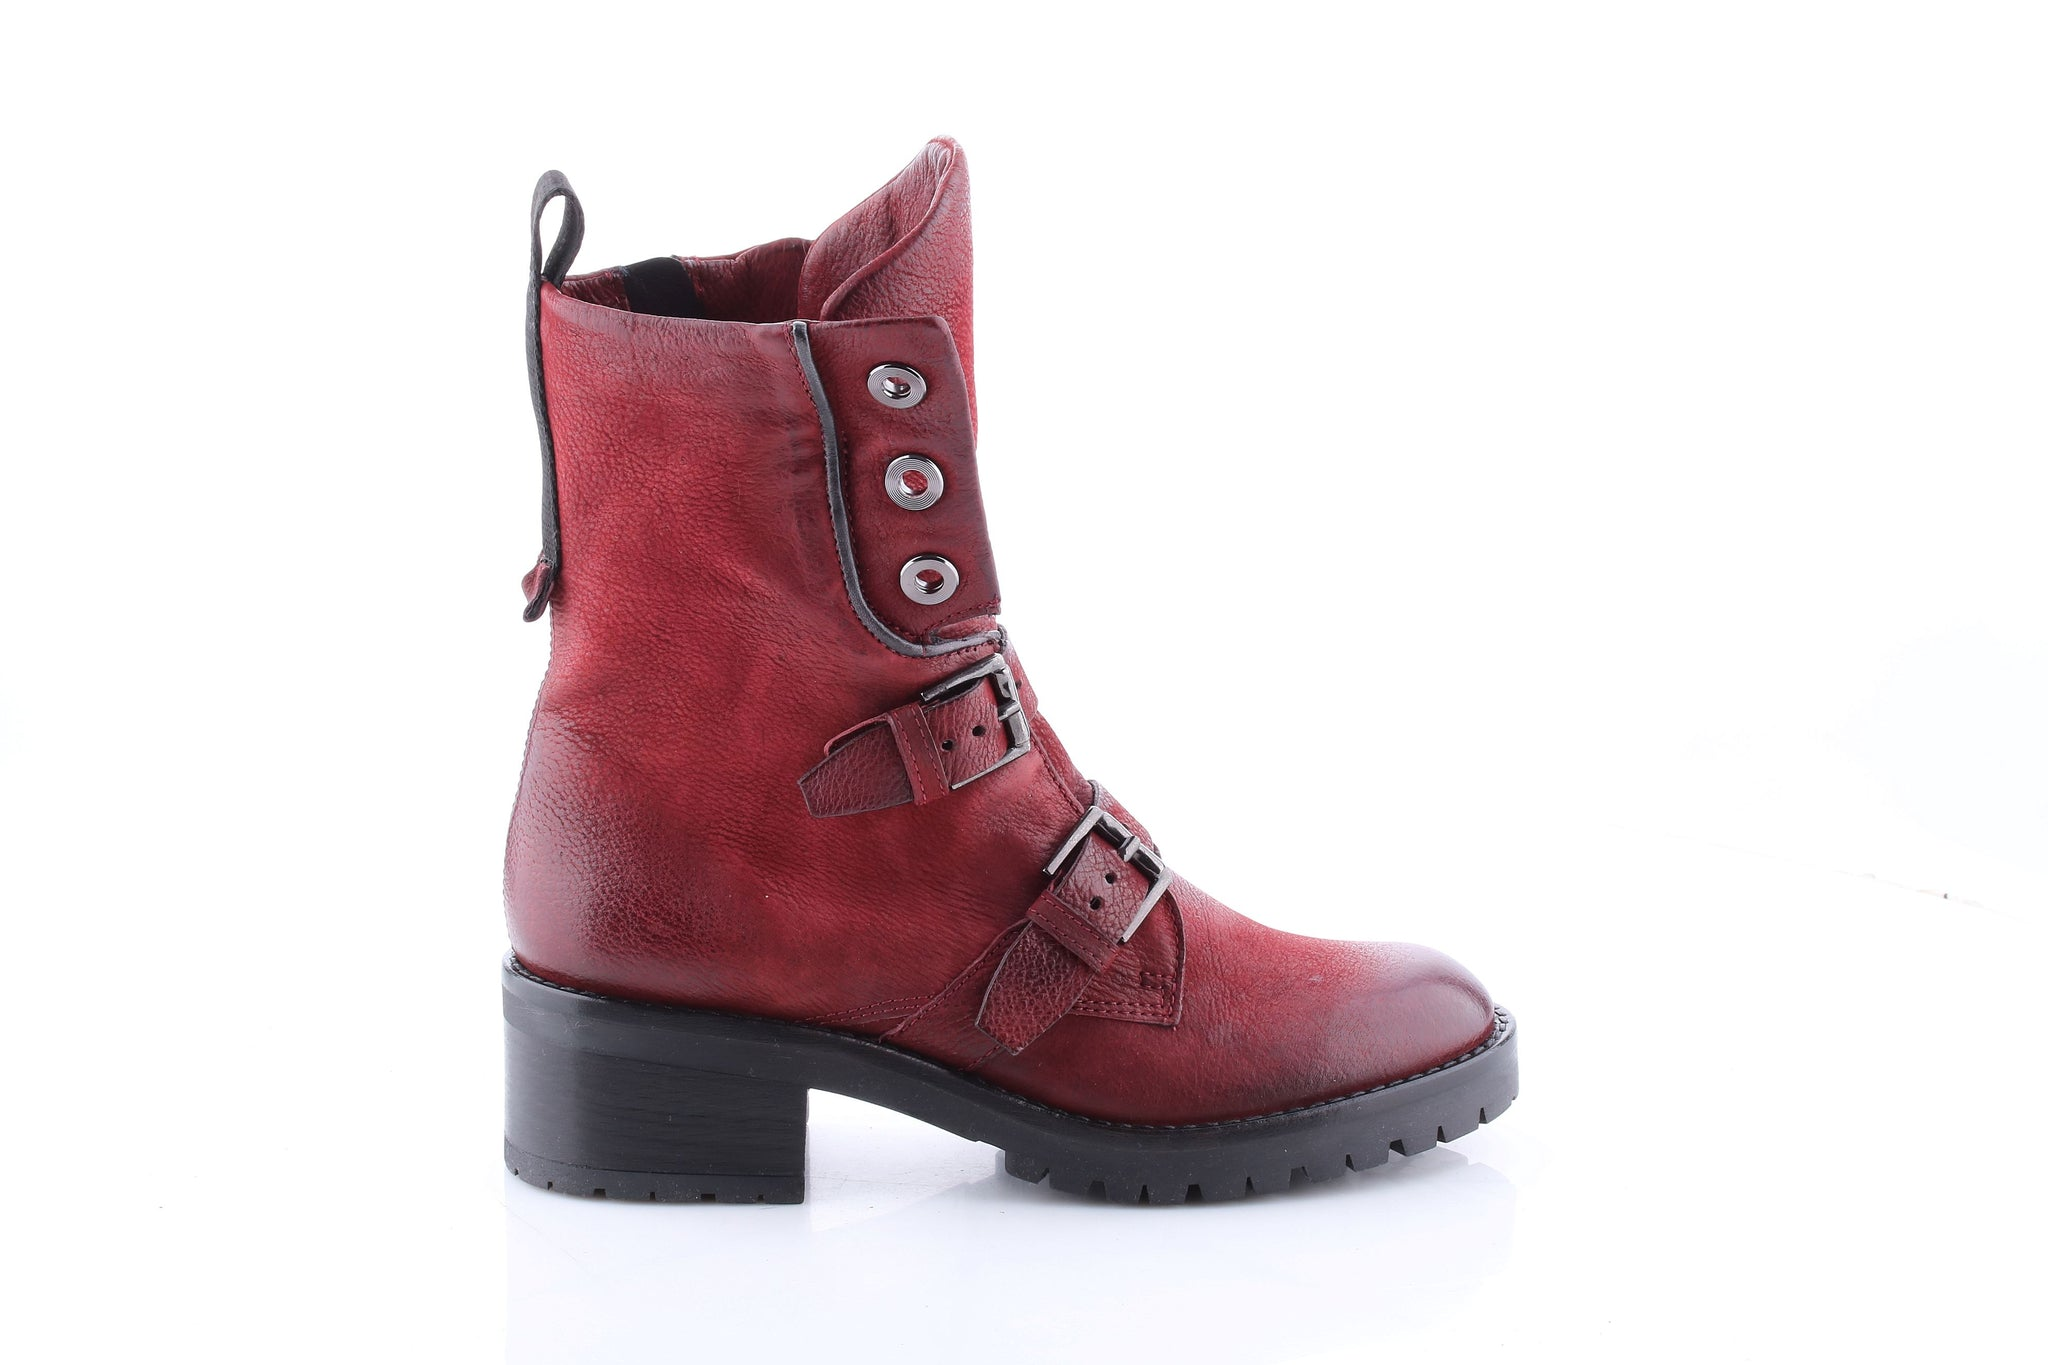 MJUS Italian Leather Boot in Bruley